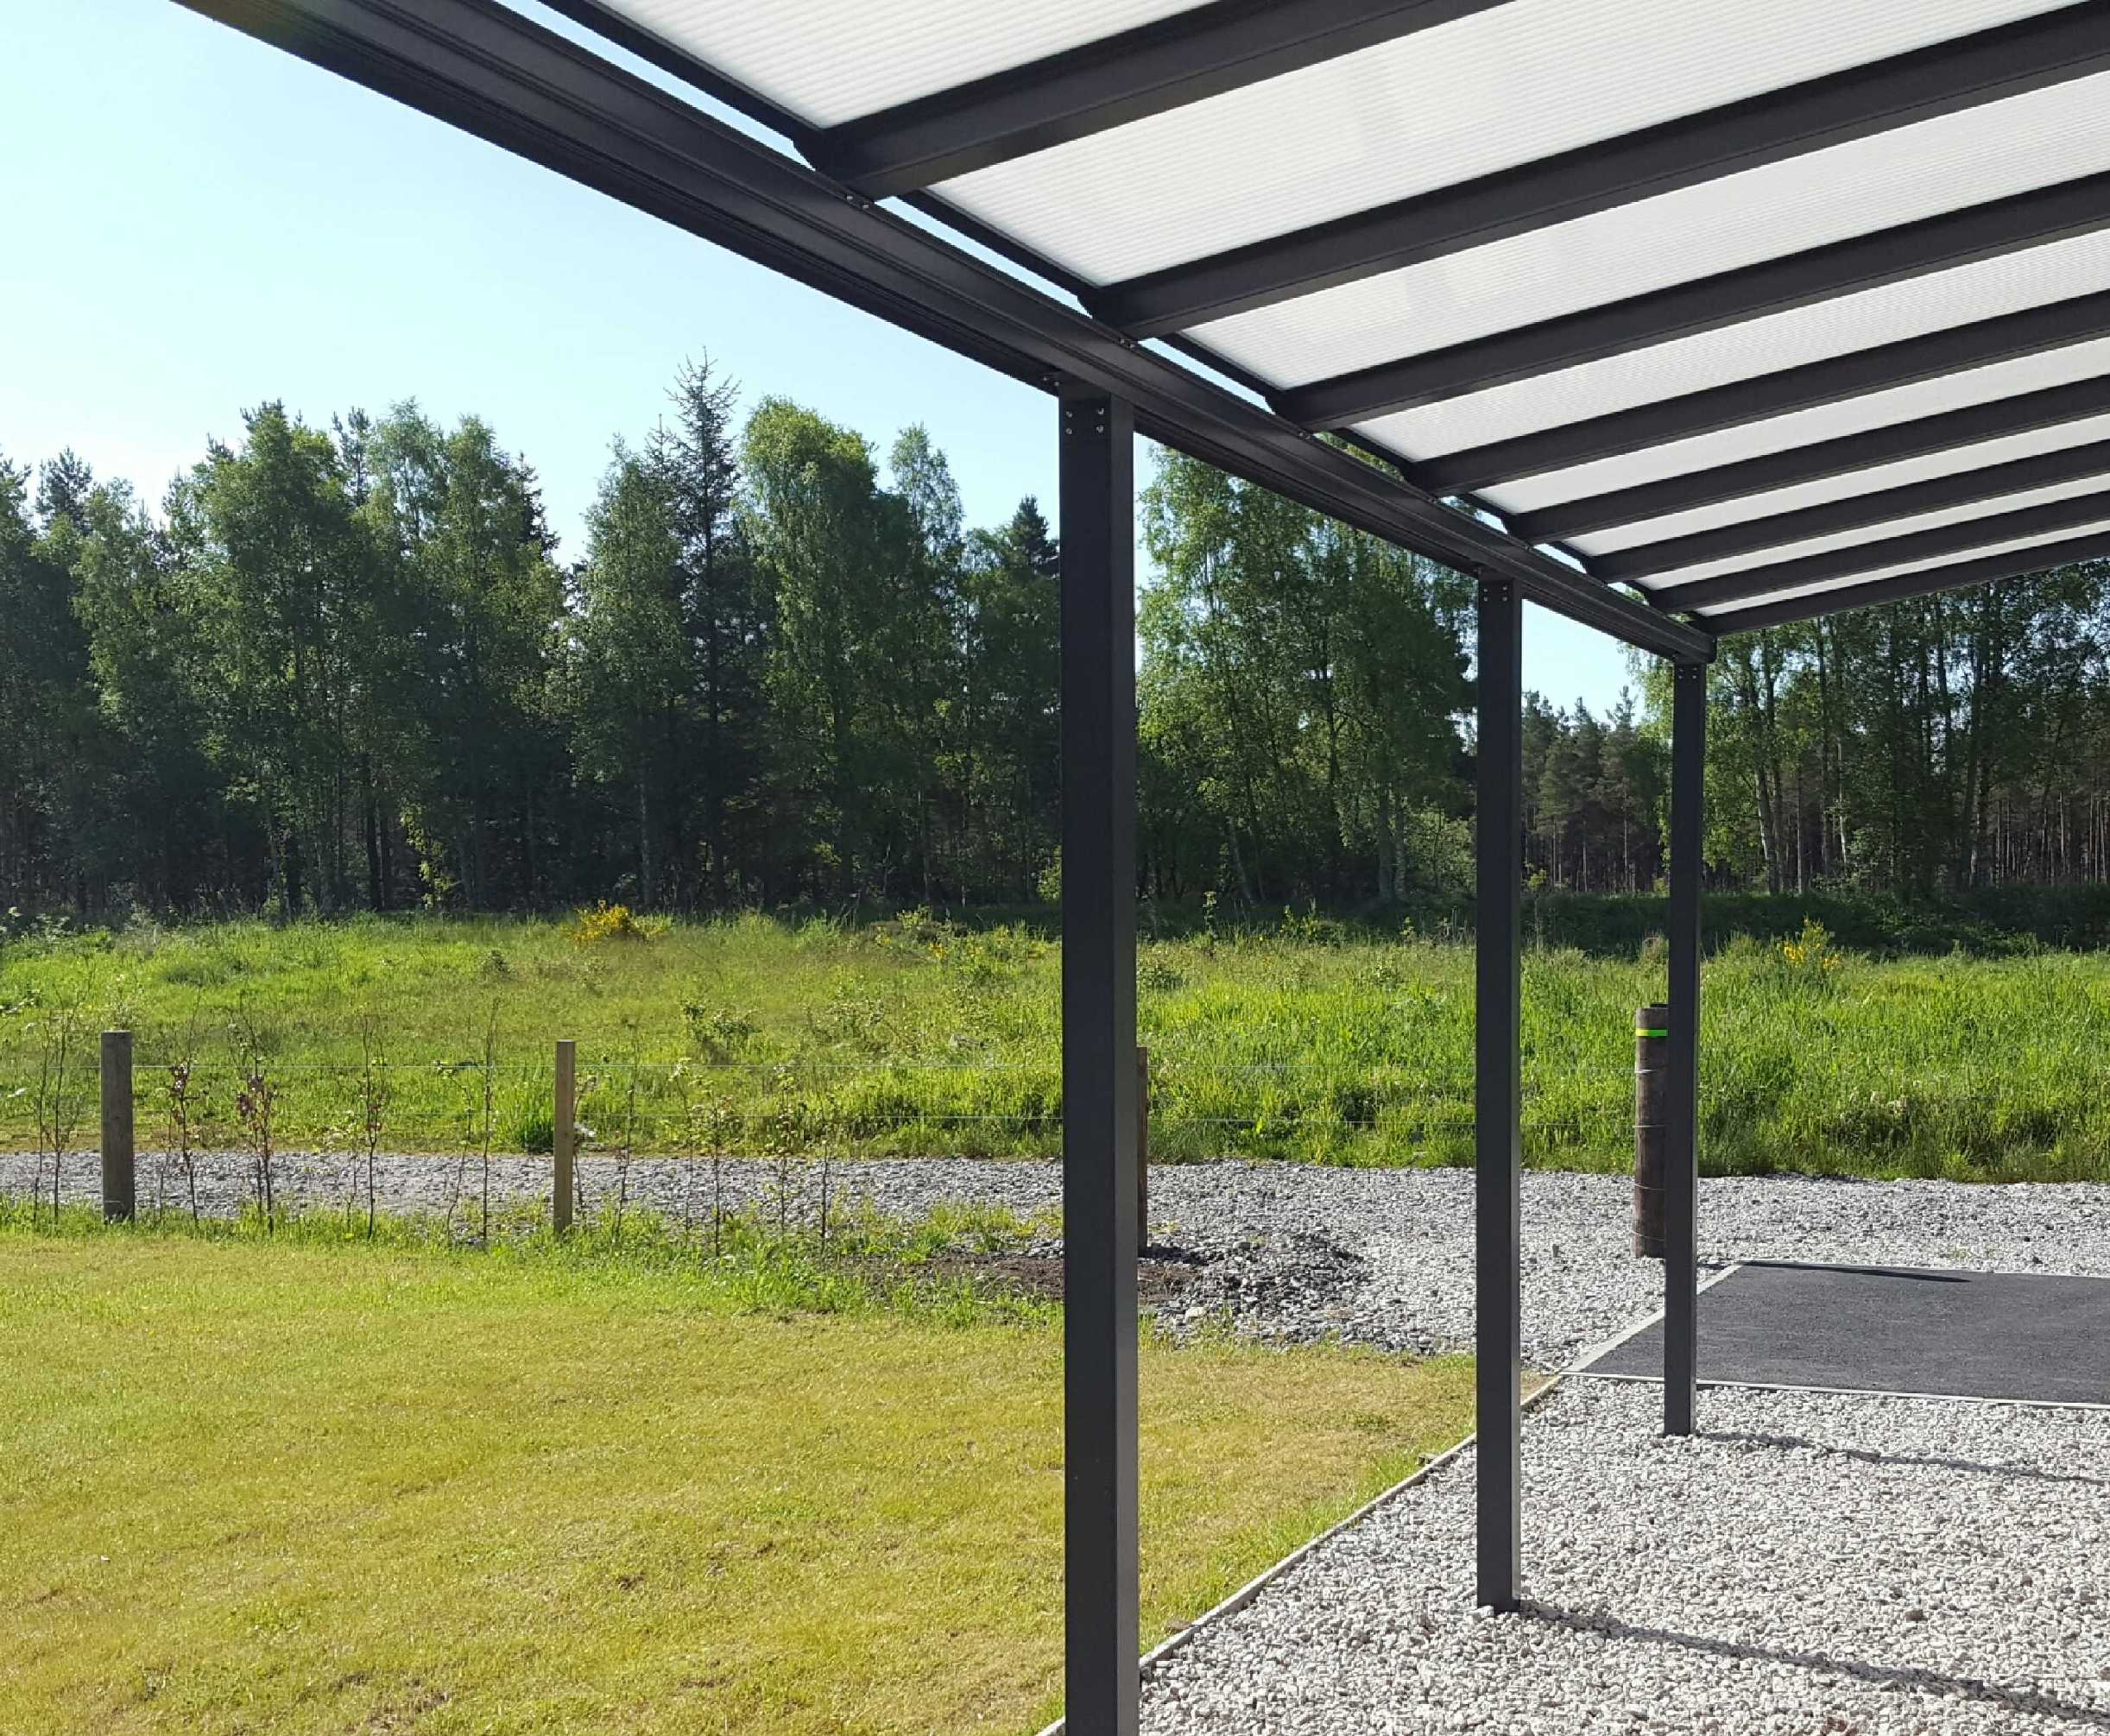 Omega Smart Lean-To Canopy, Anthracite Grey, 16mm Polycarbonate Glazing - 9.2m (W) x 3.5m (P), (5) Supporting Posts